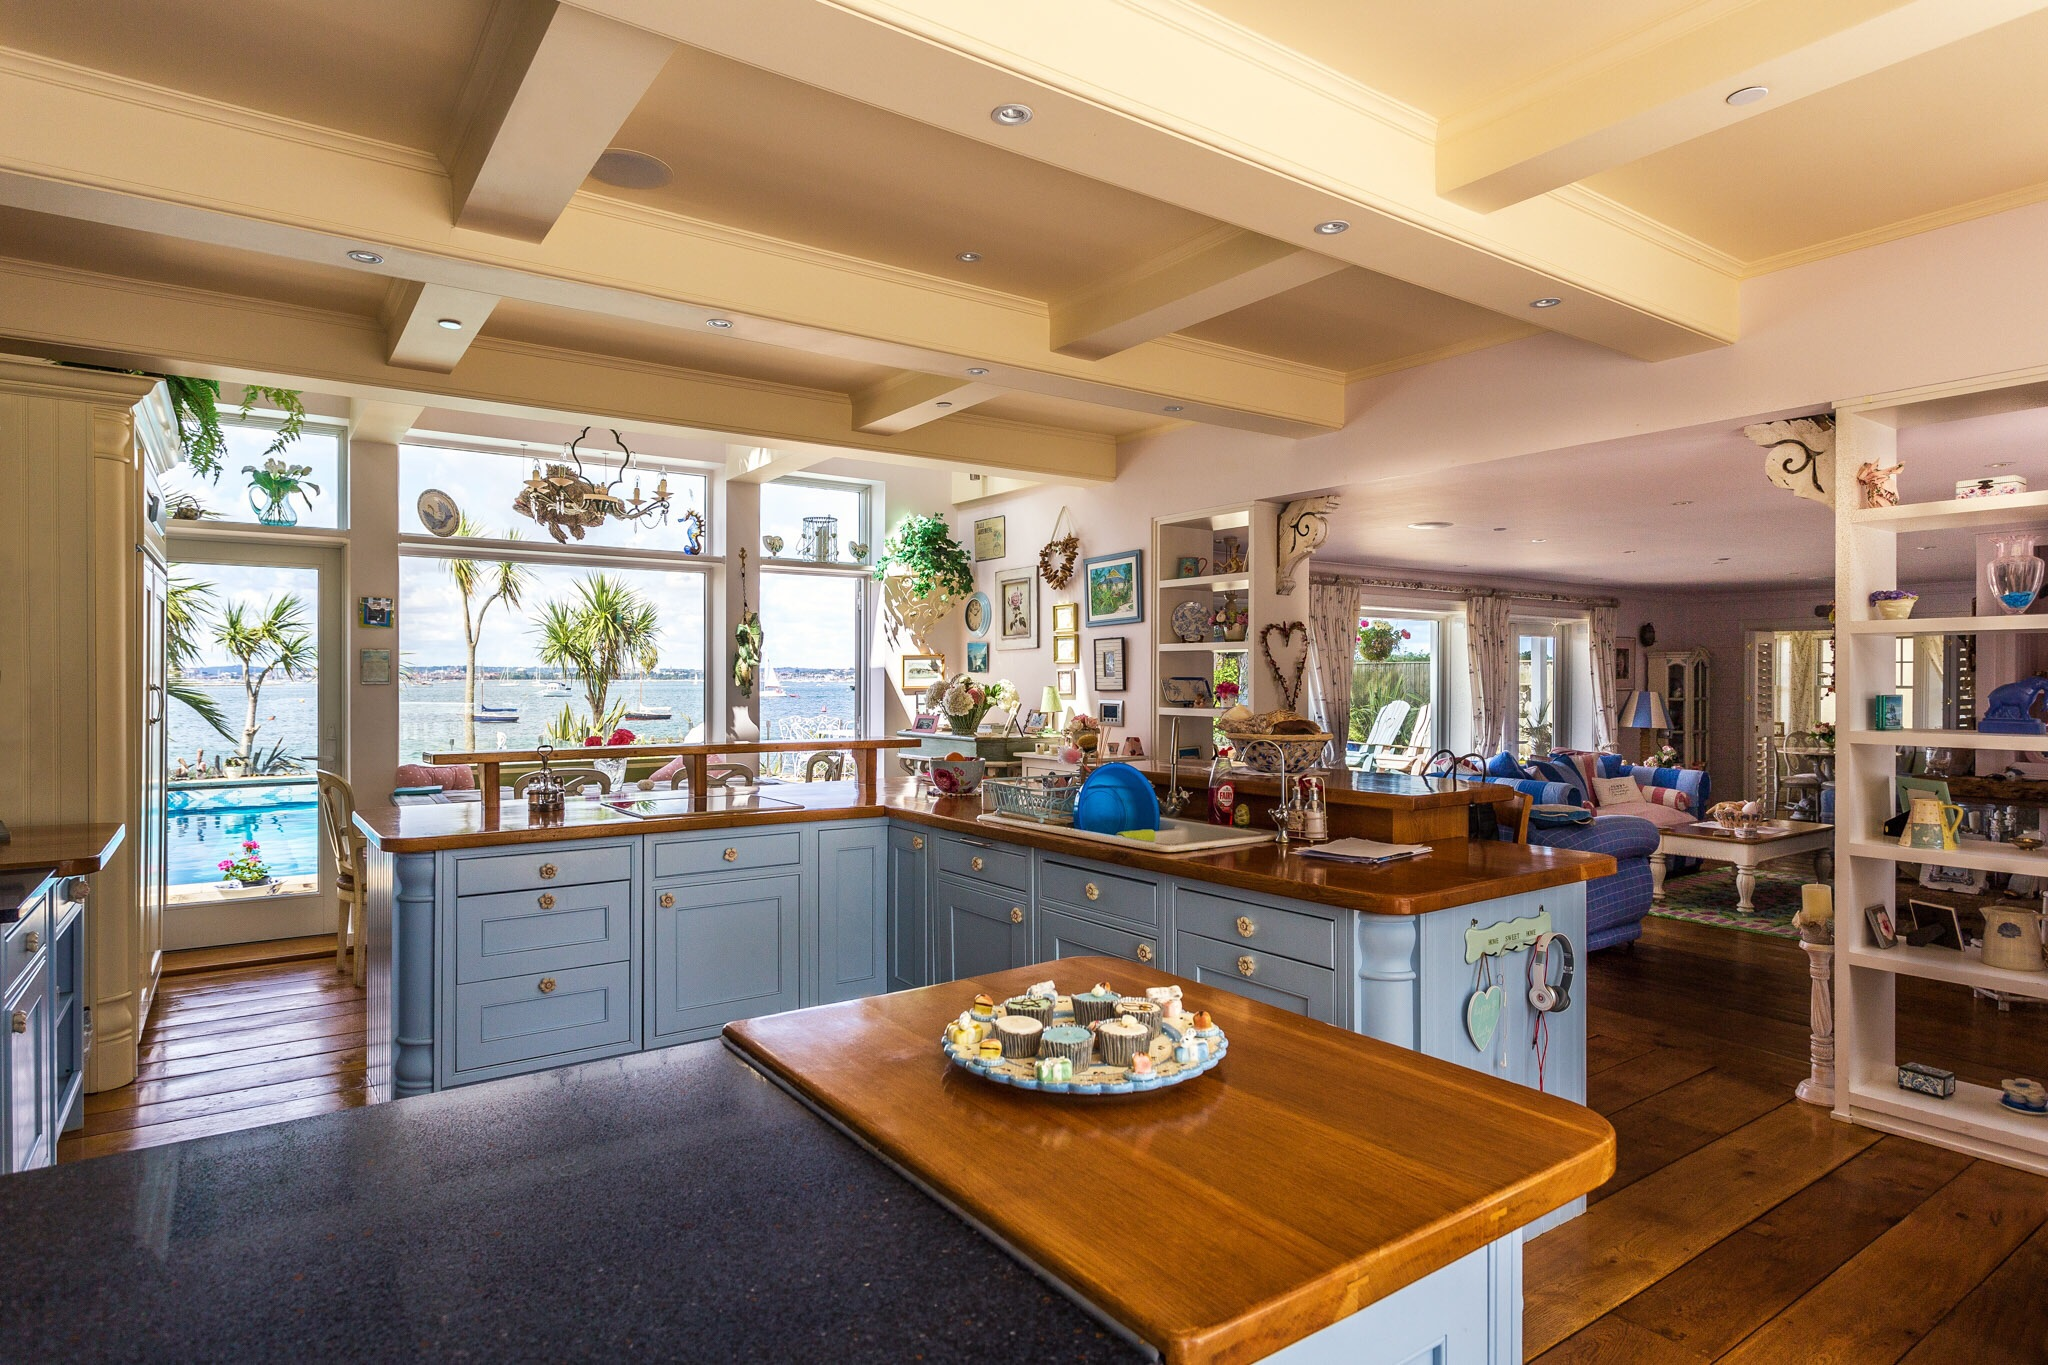 Interior Photography in Dorset by Rick McEvoy